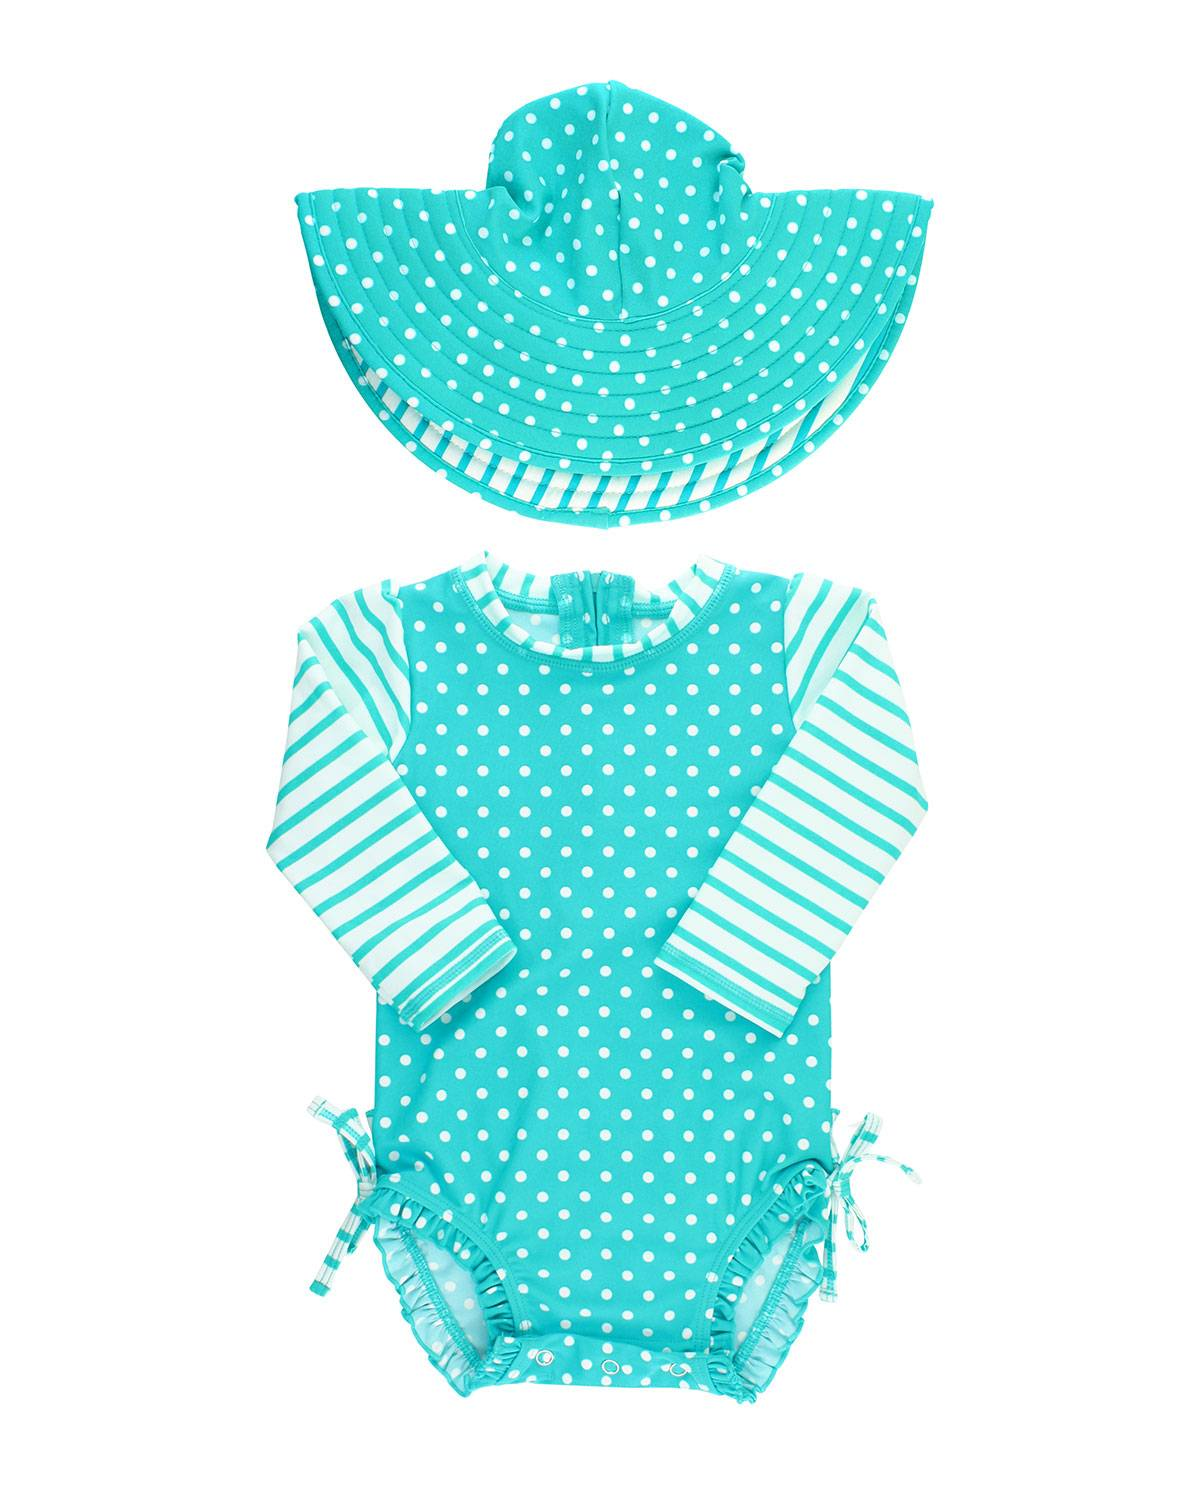 RuffleButts Polka-Dot Ruffle Swimsuit with Matching Hat, Size 0-24 Months - Size: 6-12 Months